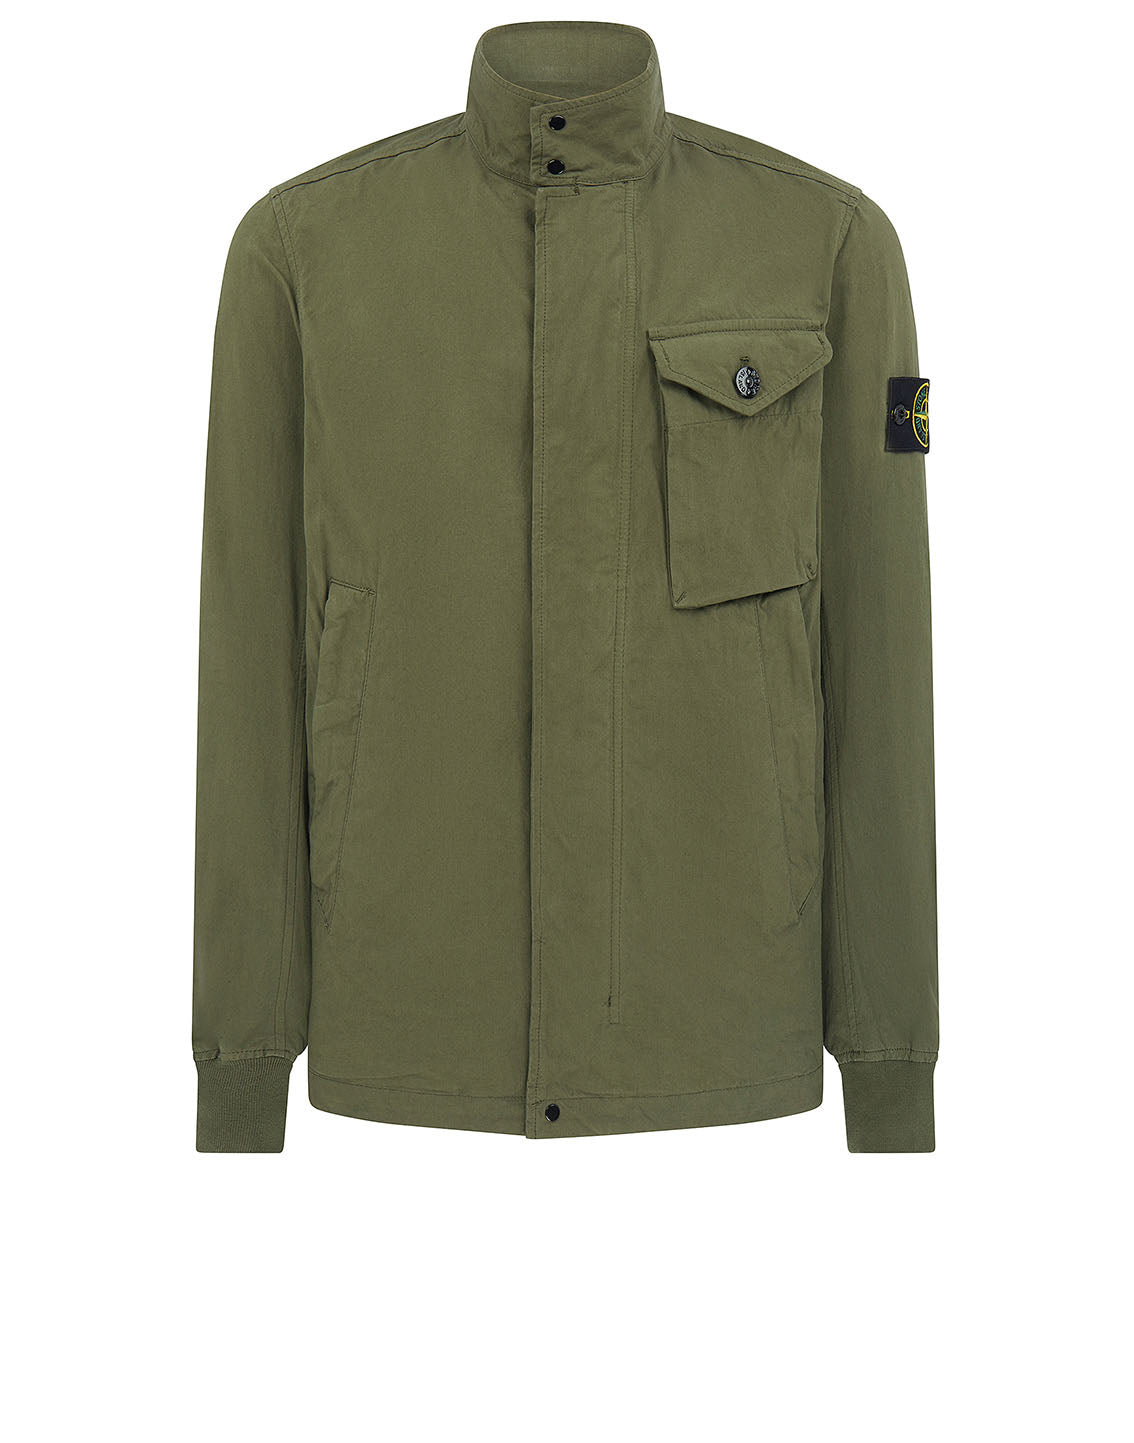 44321 Jacket in Olive